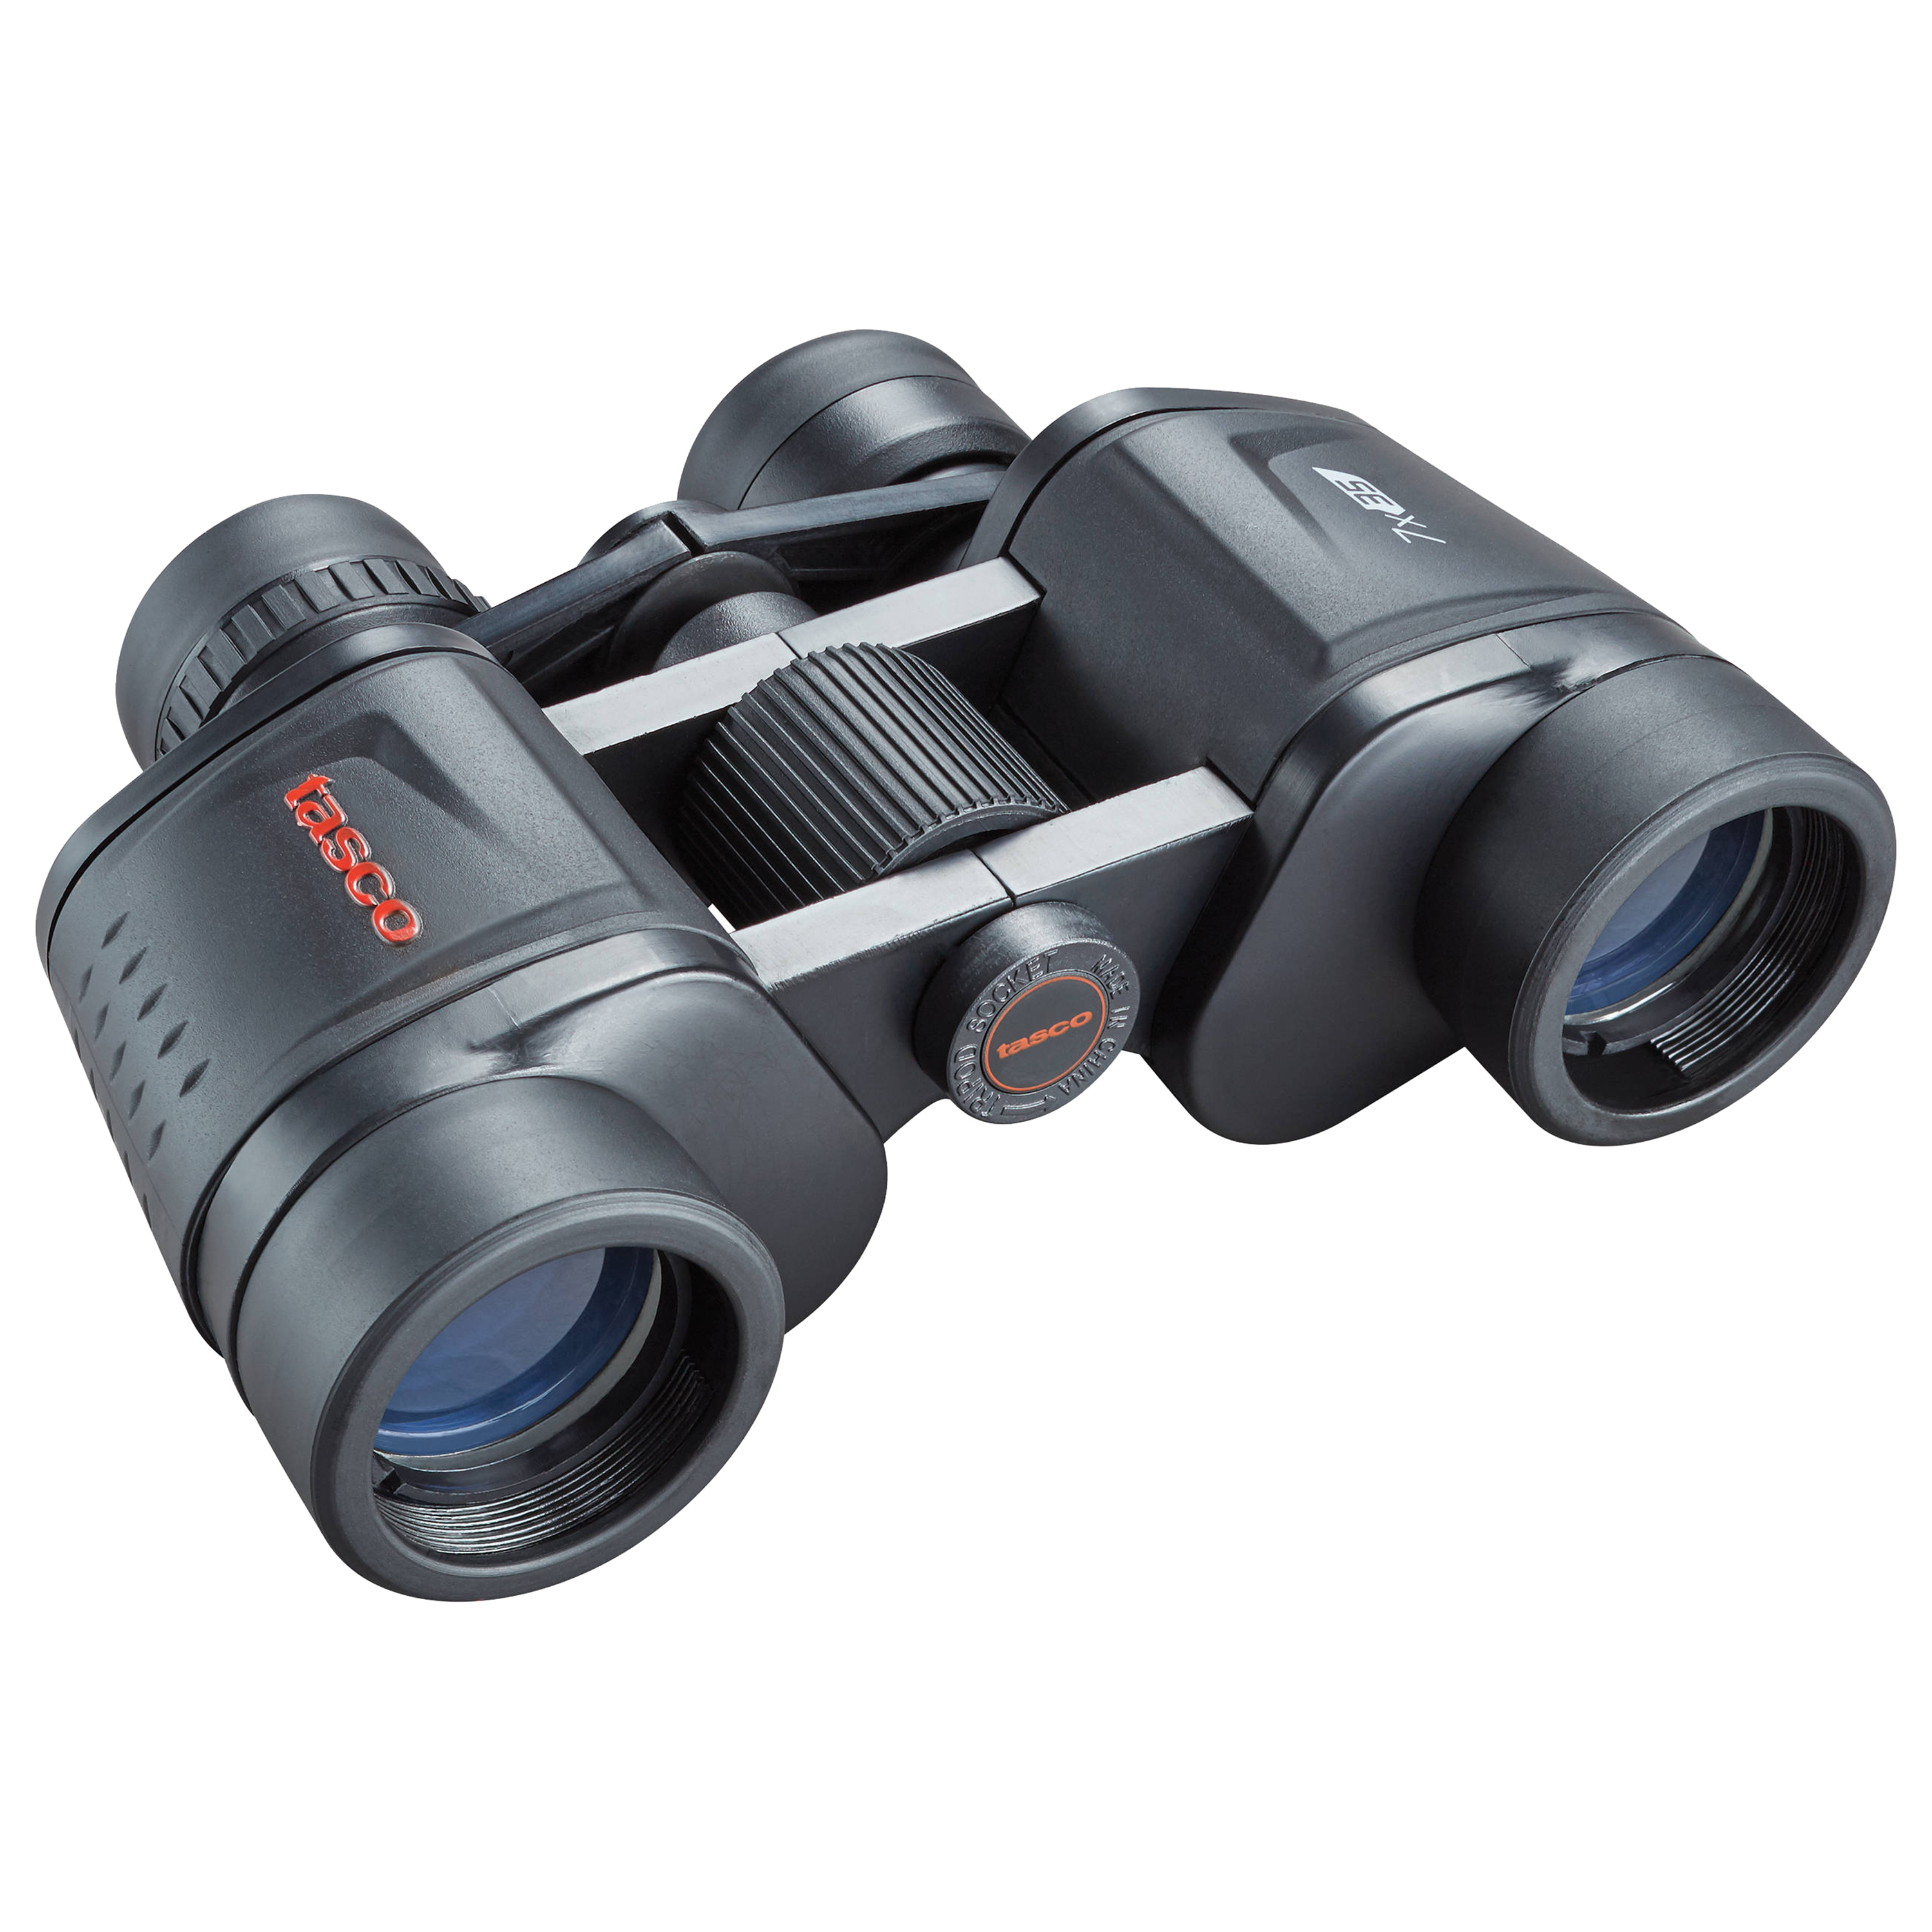 Tasco Essentials Binoculars 7x35mm, Porro Prism, Black, Boxed by Tasco